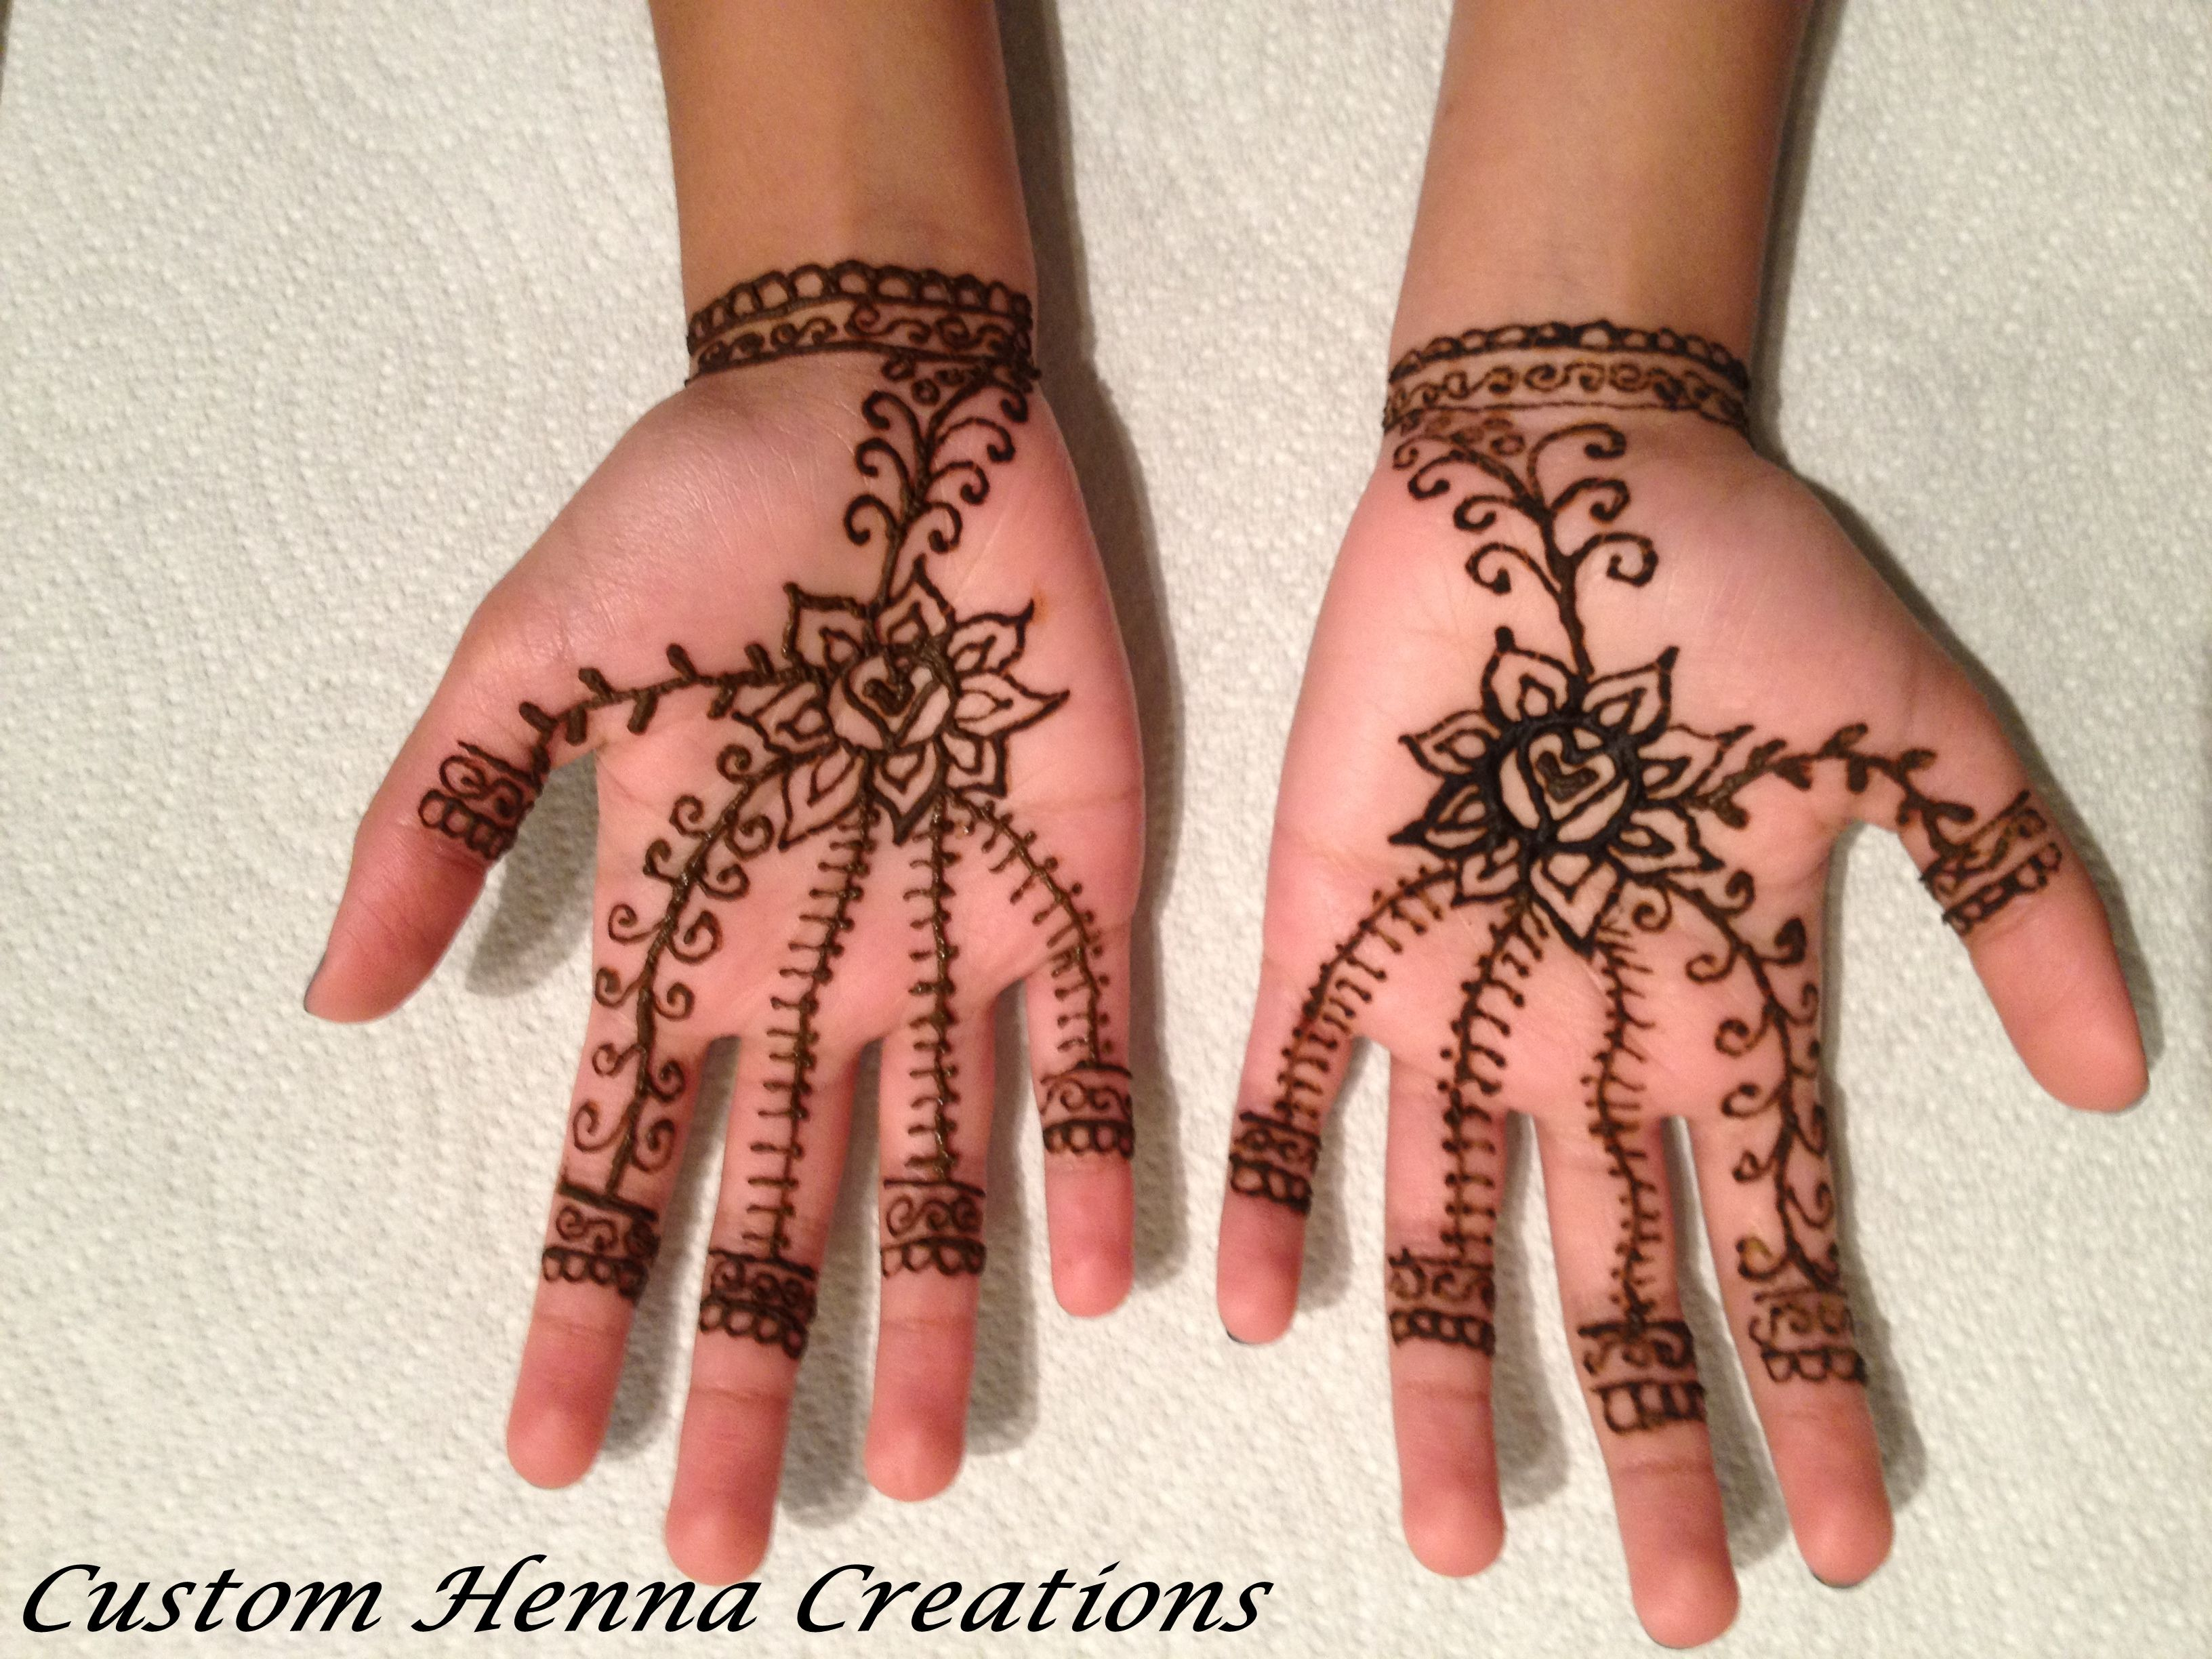 Mehndi Flower Designs For Hands : Henna on hands of child heart and flower design mehndi